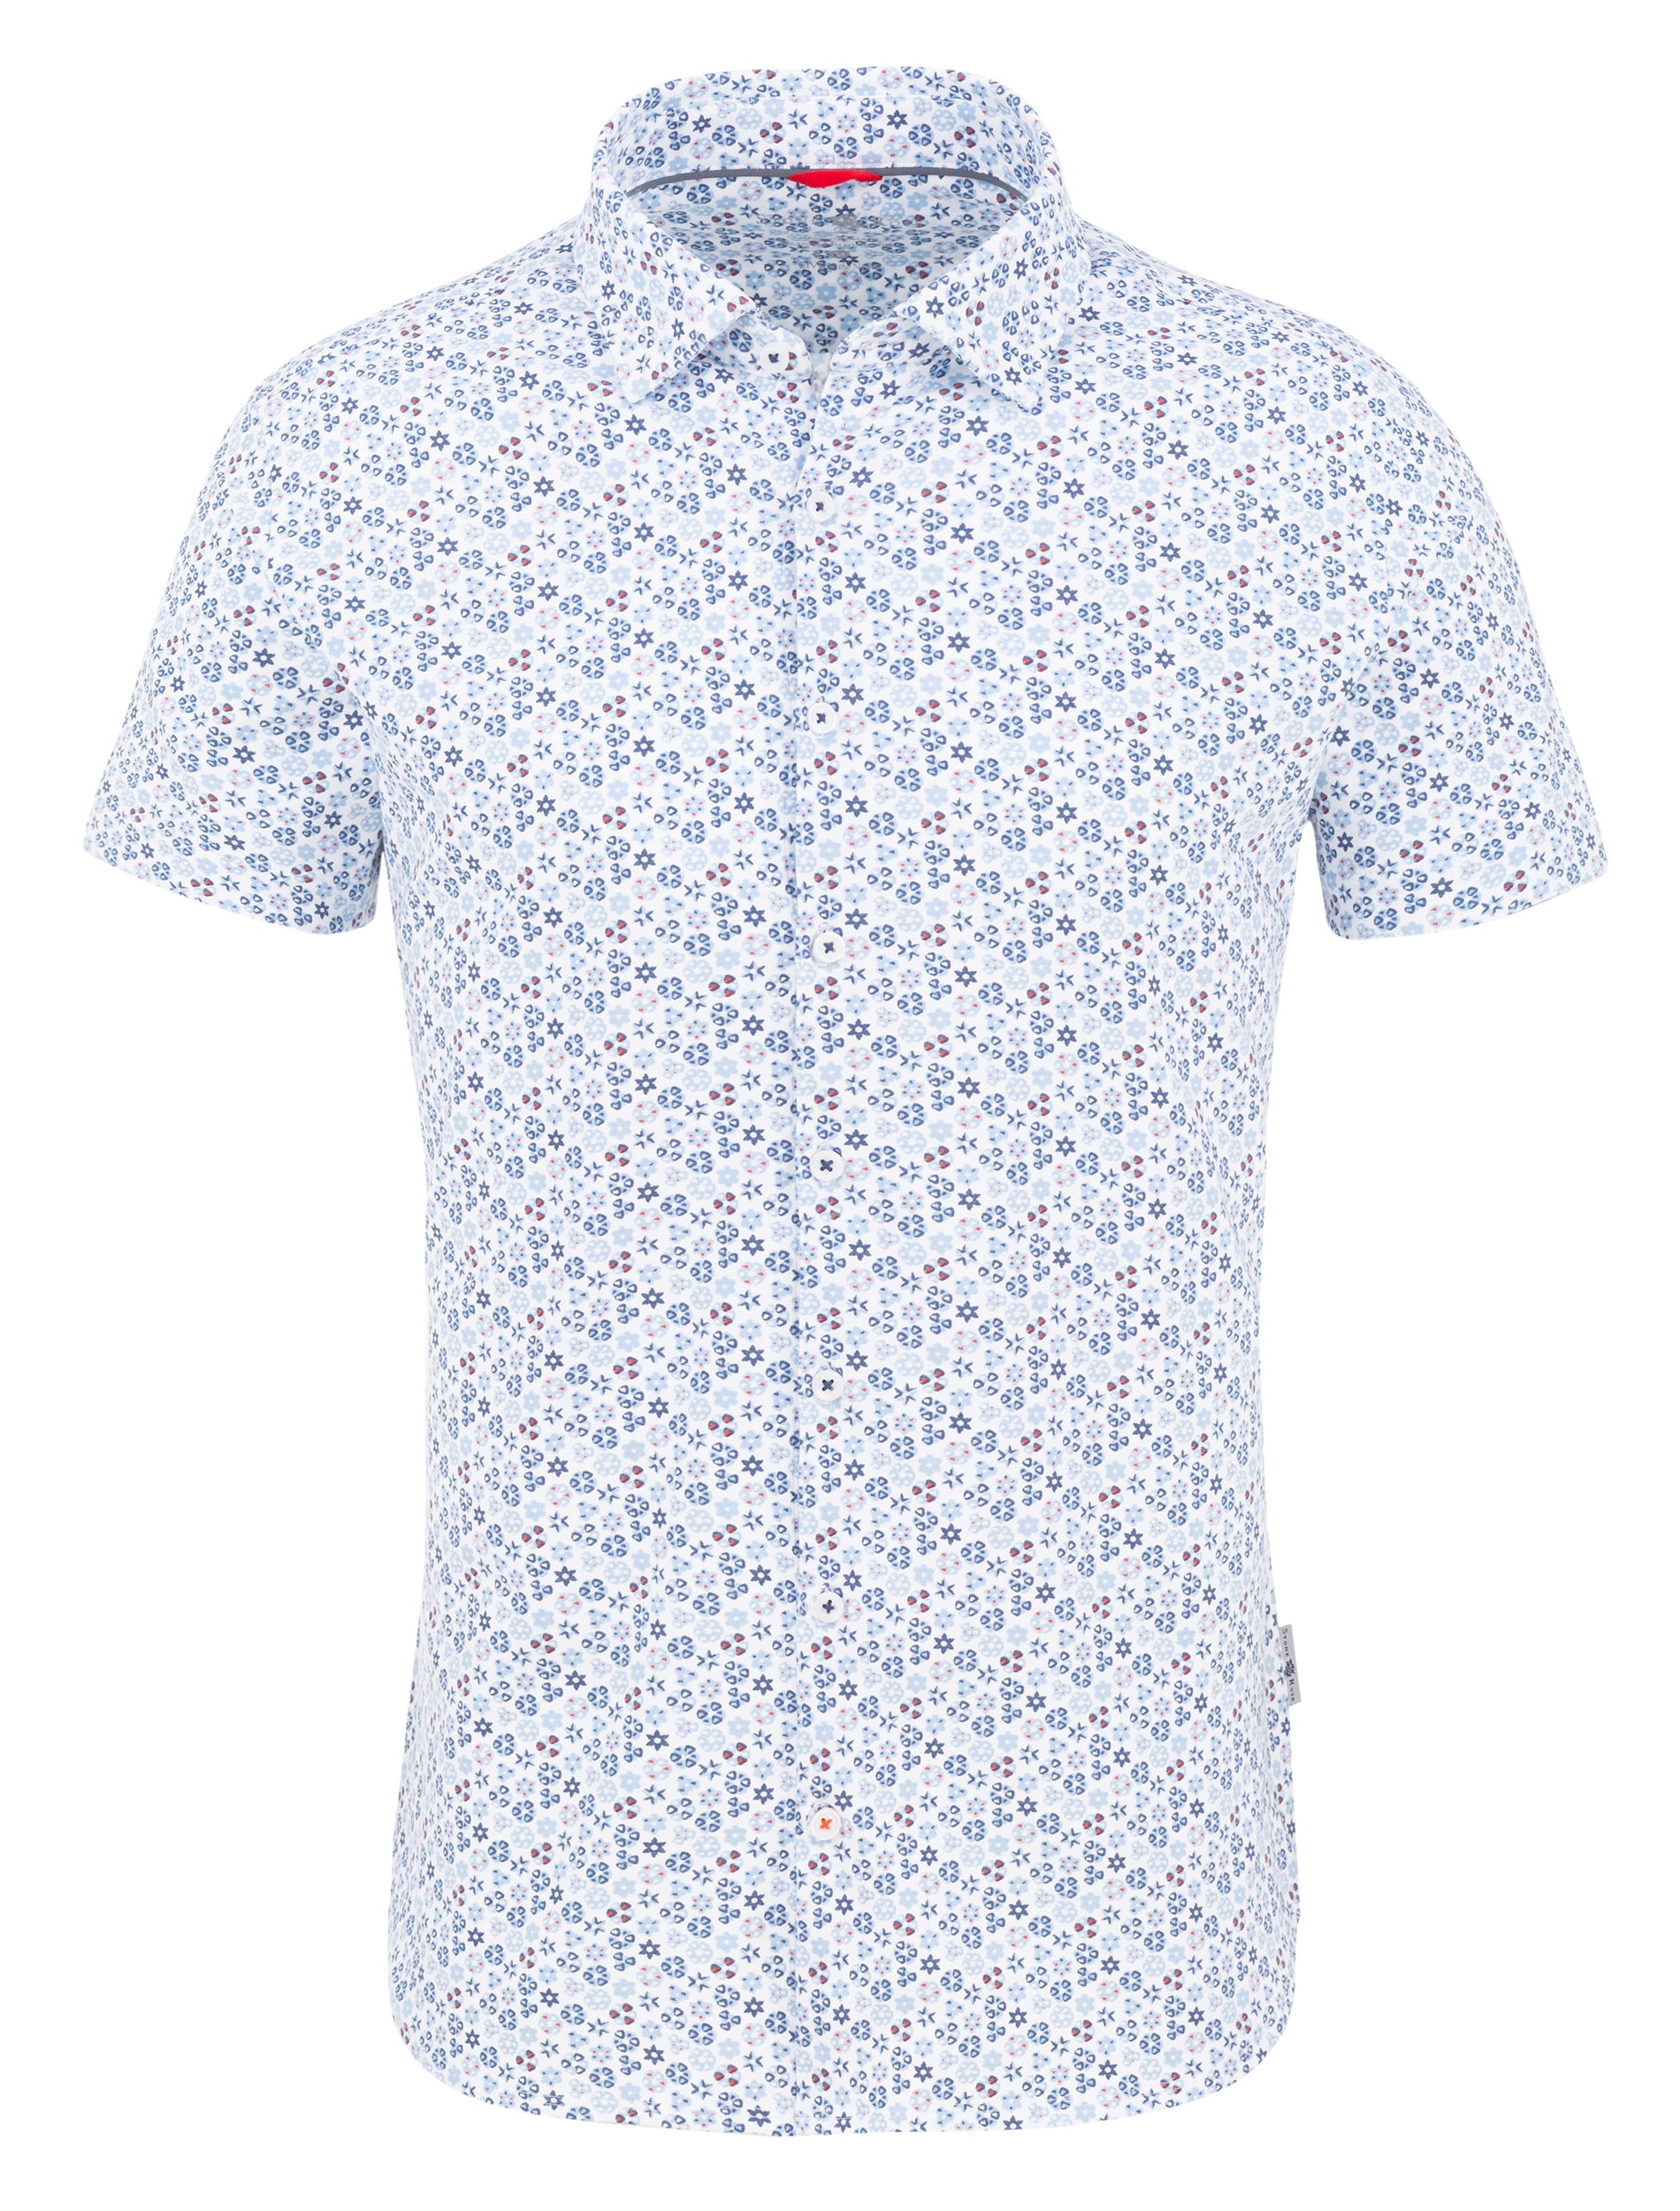 Light Blue Geometric Performance Knit Short Sleeve Shirt